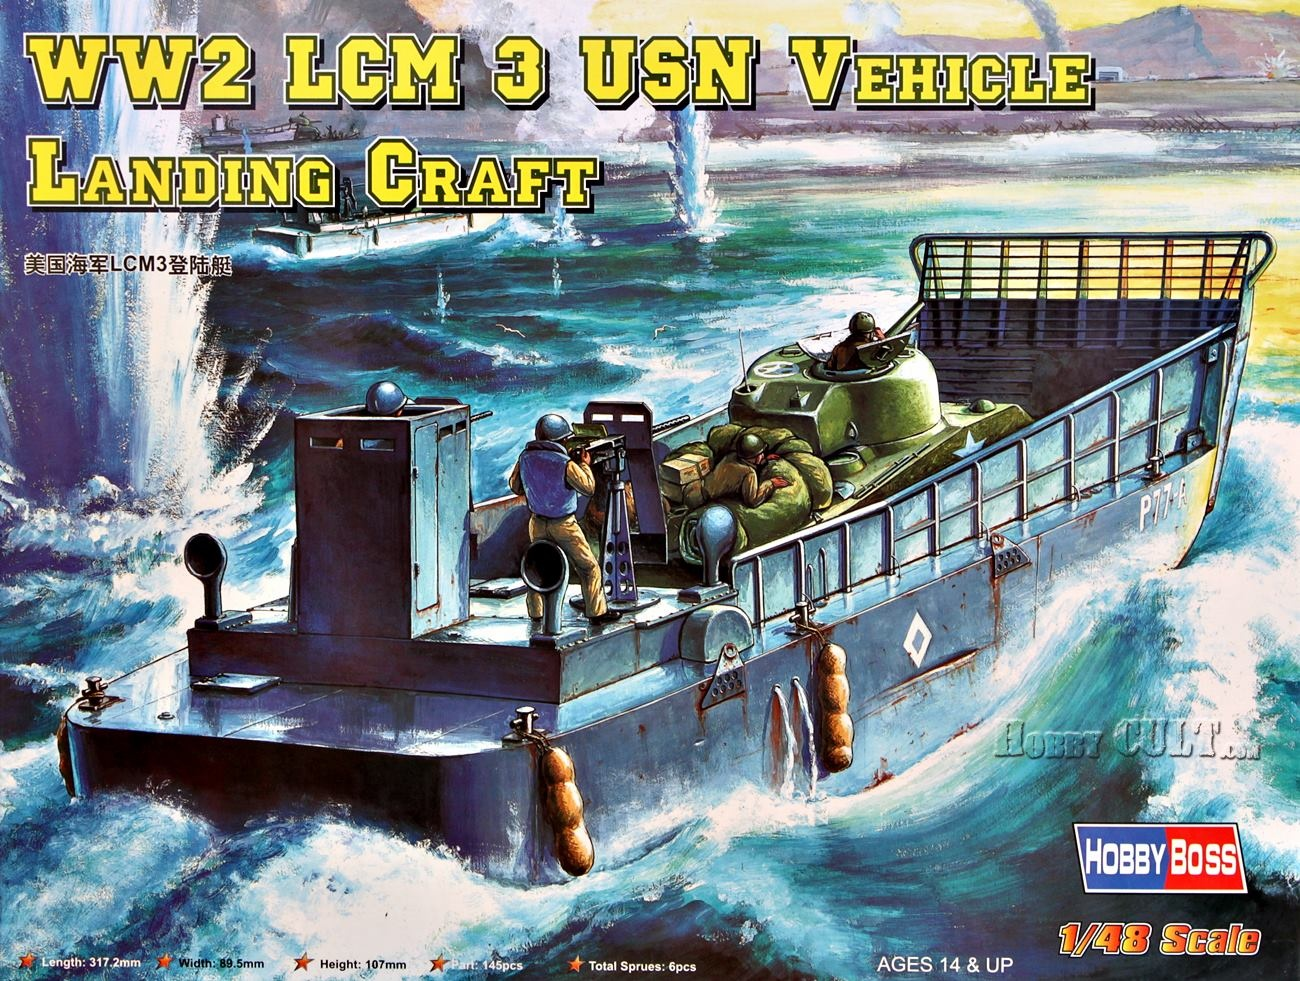 1:48 U.S.N. Vehicle Landing Craft LCM-3